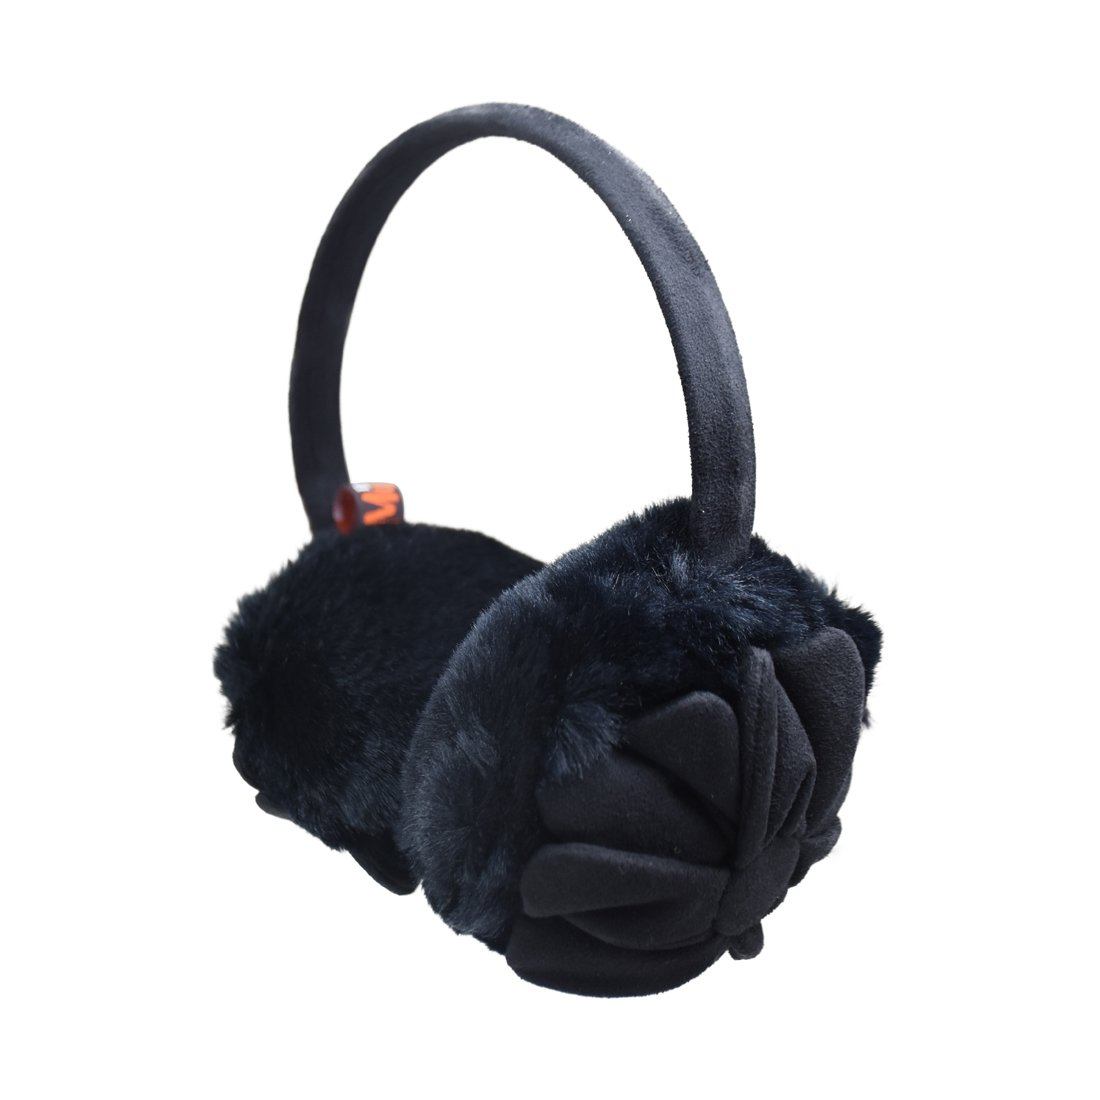 Girls Adjustable Earmuff With Suede Flower